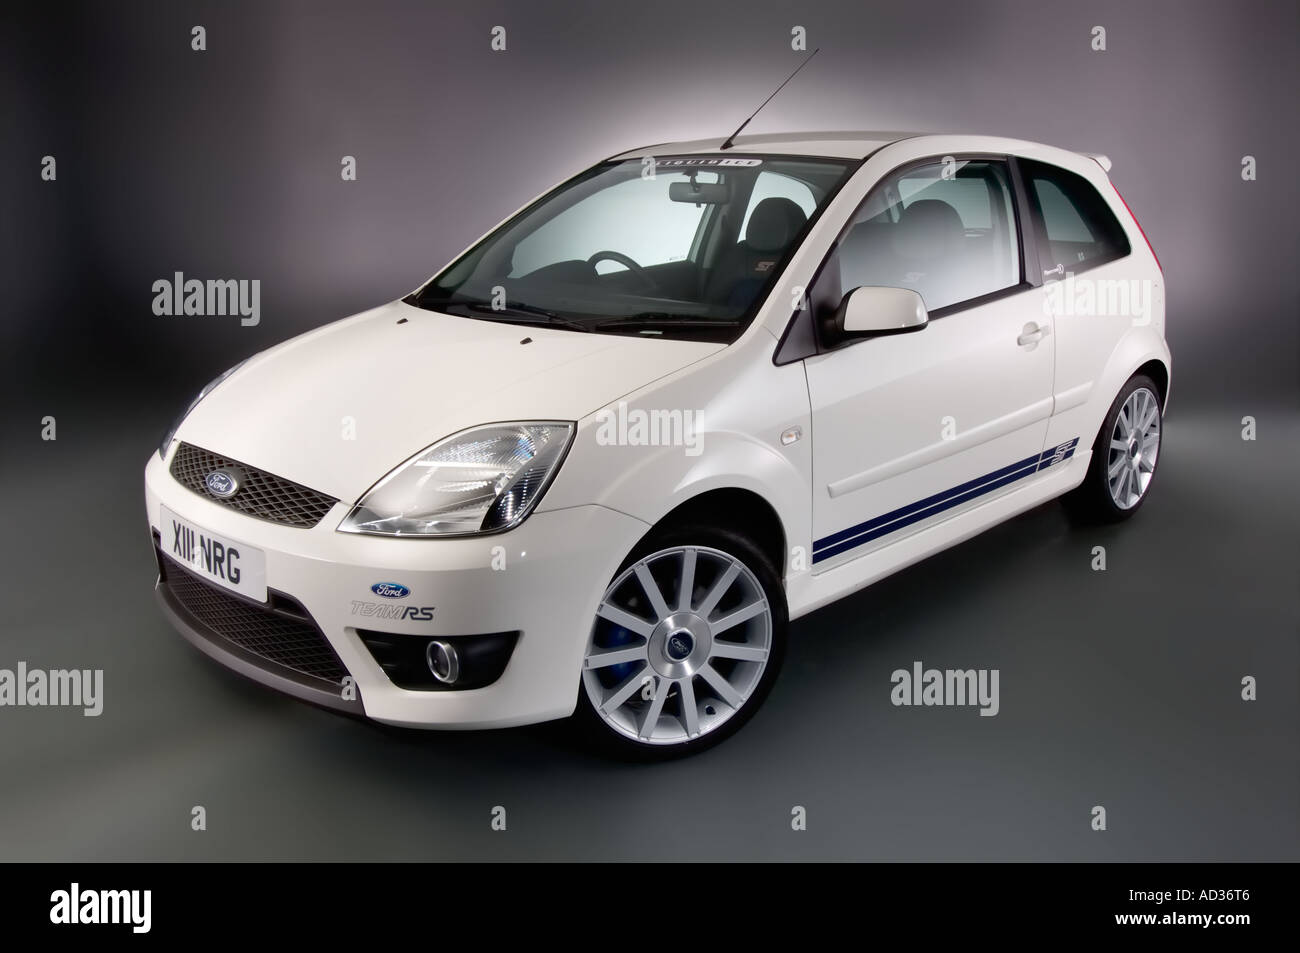 2005 ford fiesta st in diamond white front left three quarter view